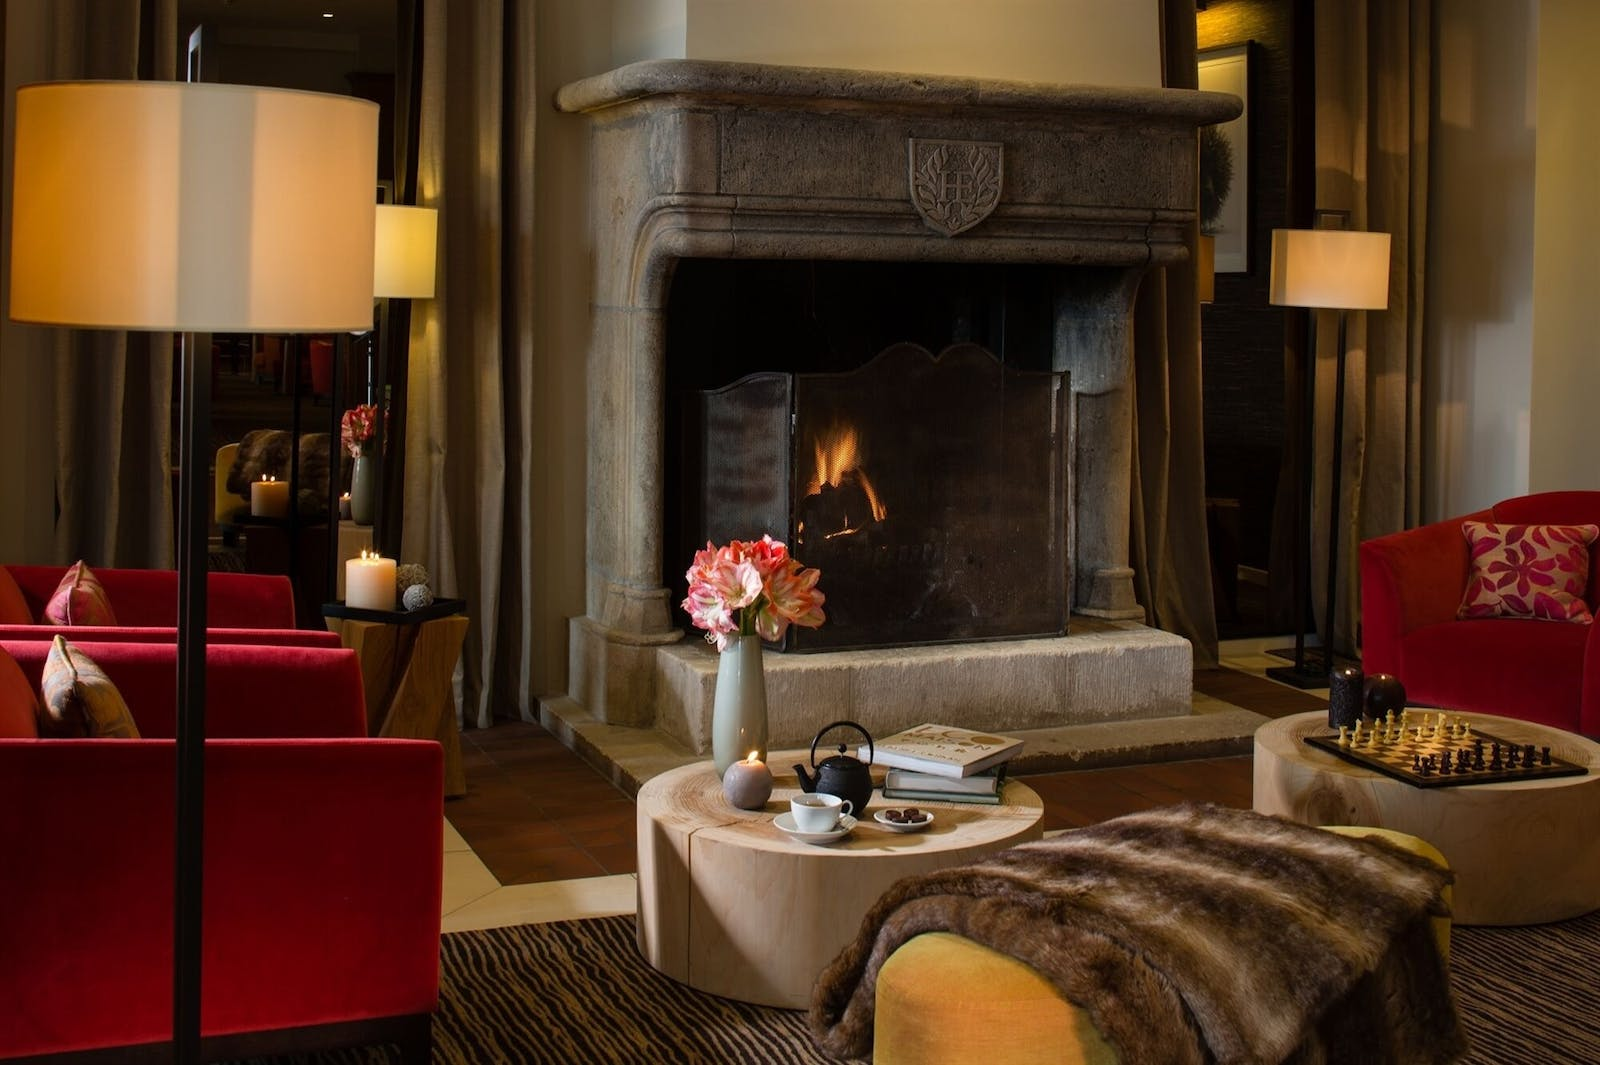 Lobby Fireplace, Hotel Ermitage, Evian Resort, Lake Geneva, France